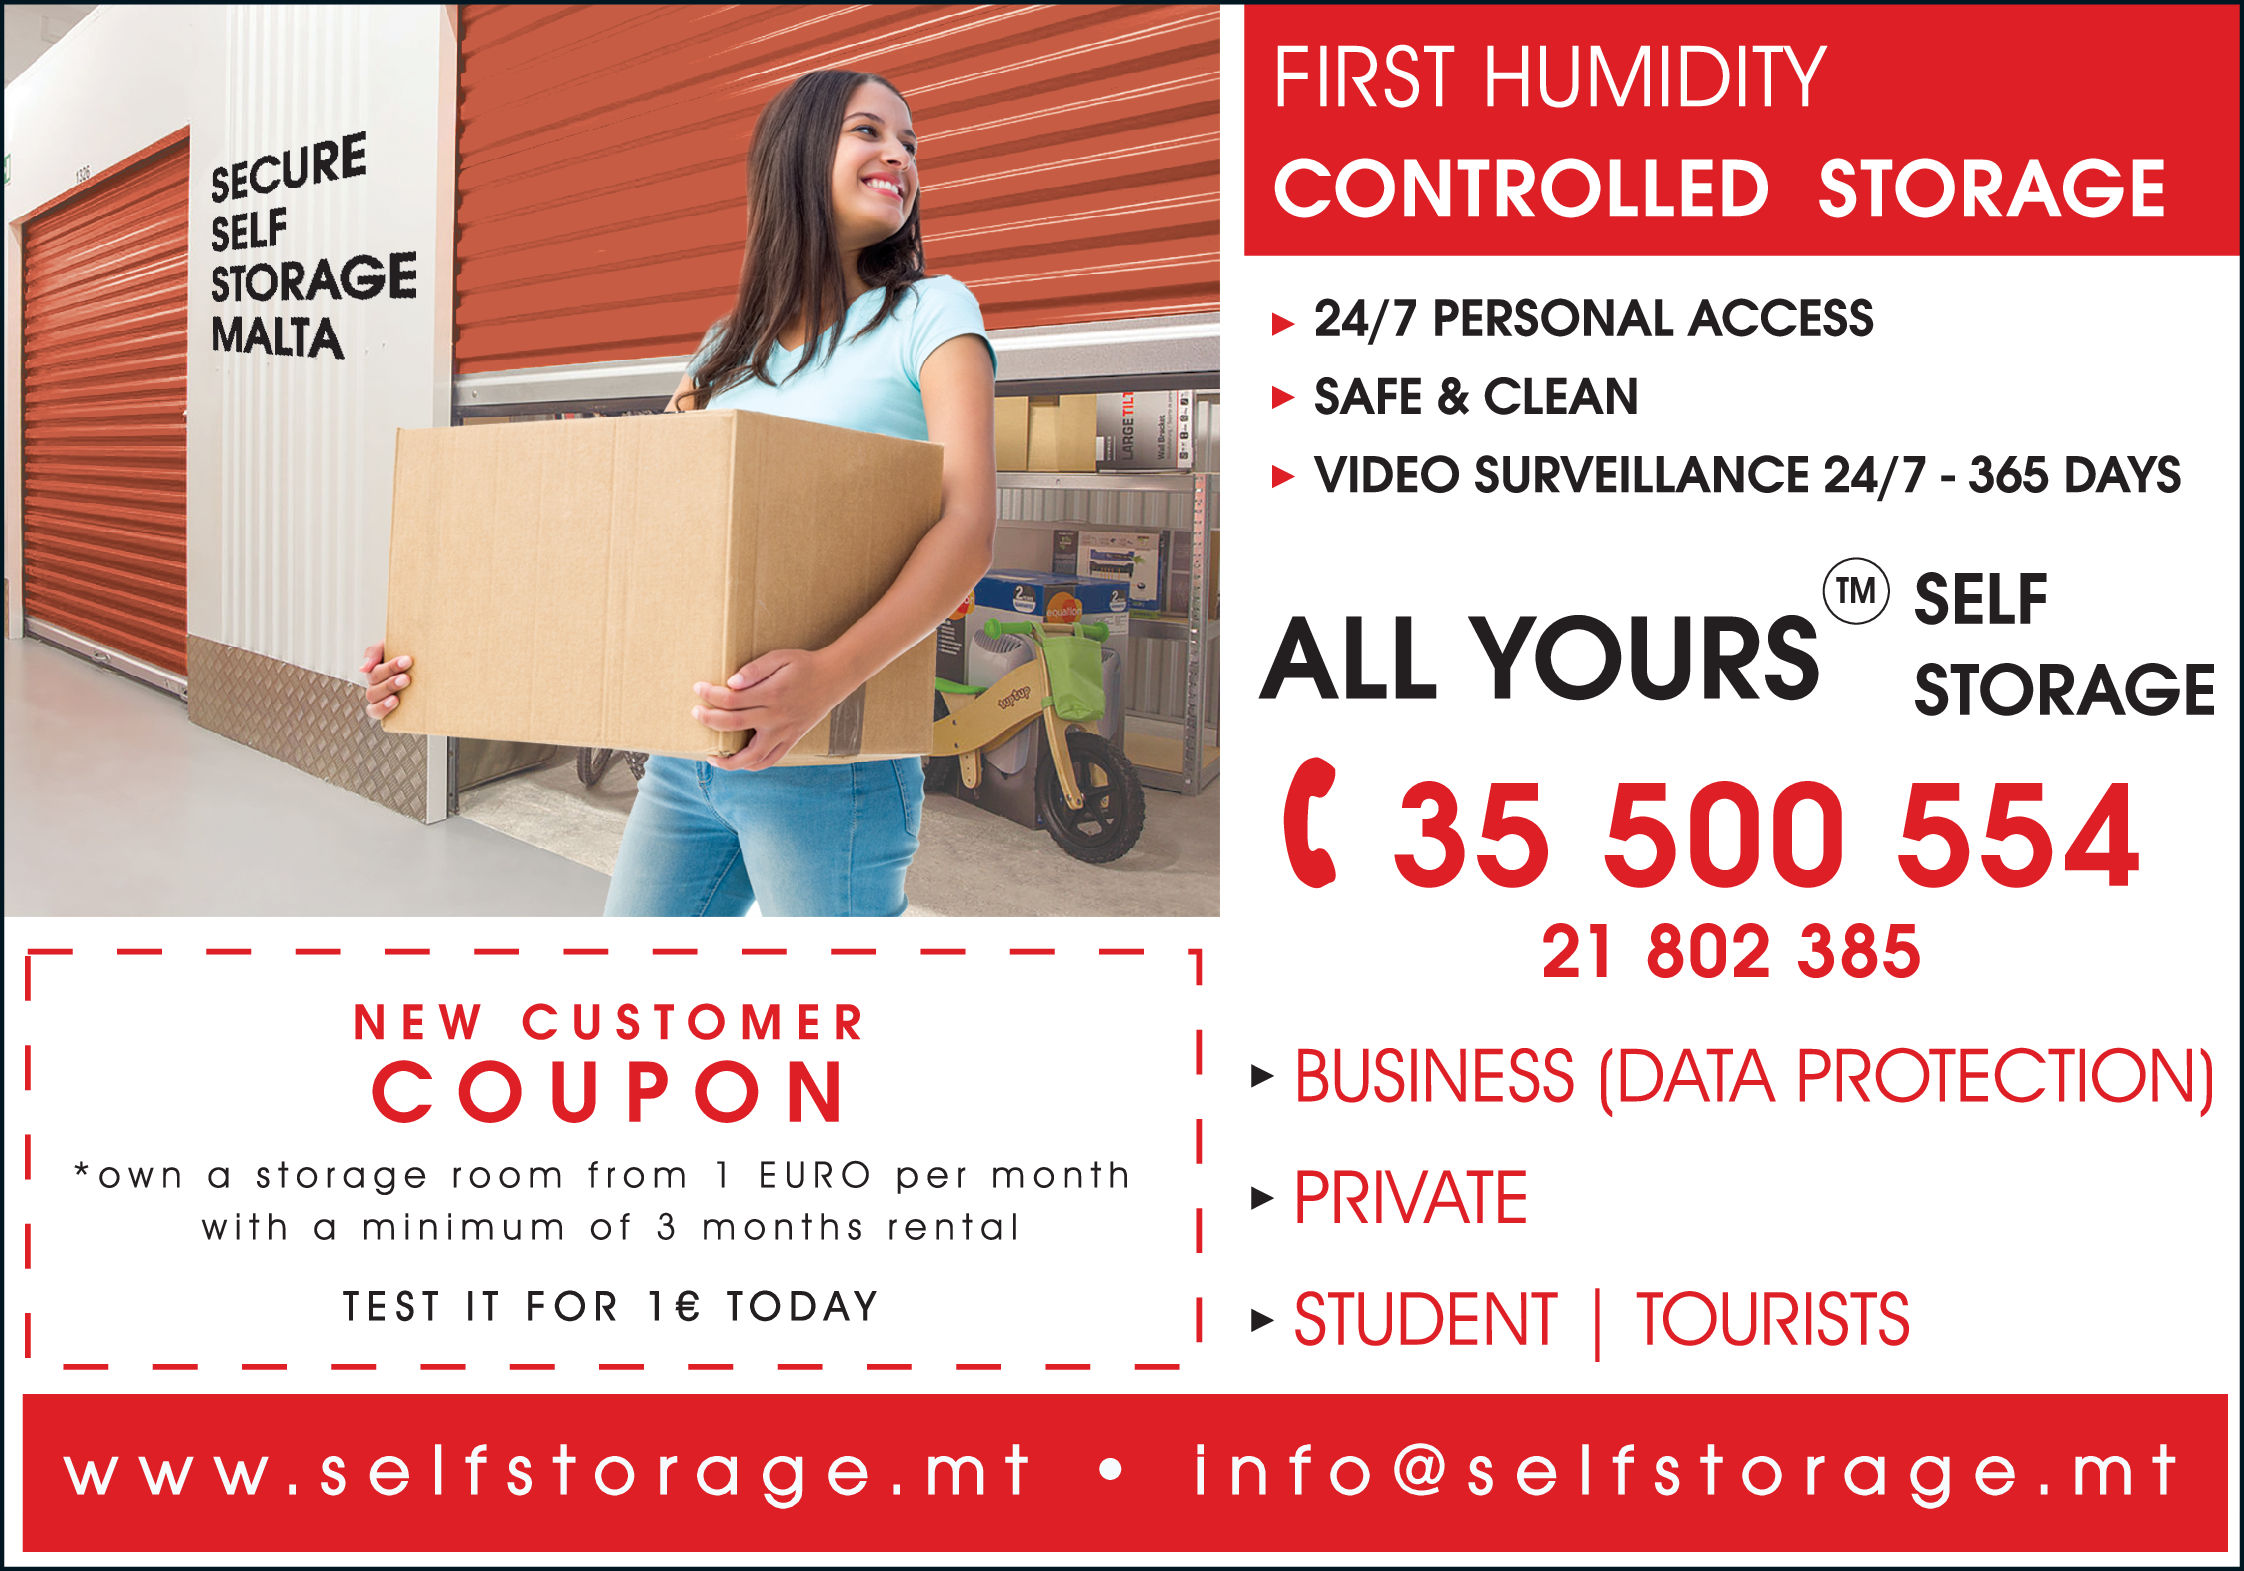 All Yours - Self Storage and Rent - Storage-Household & Commercial